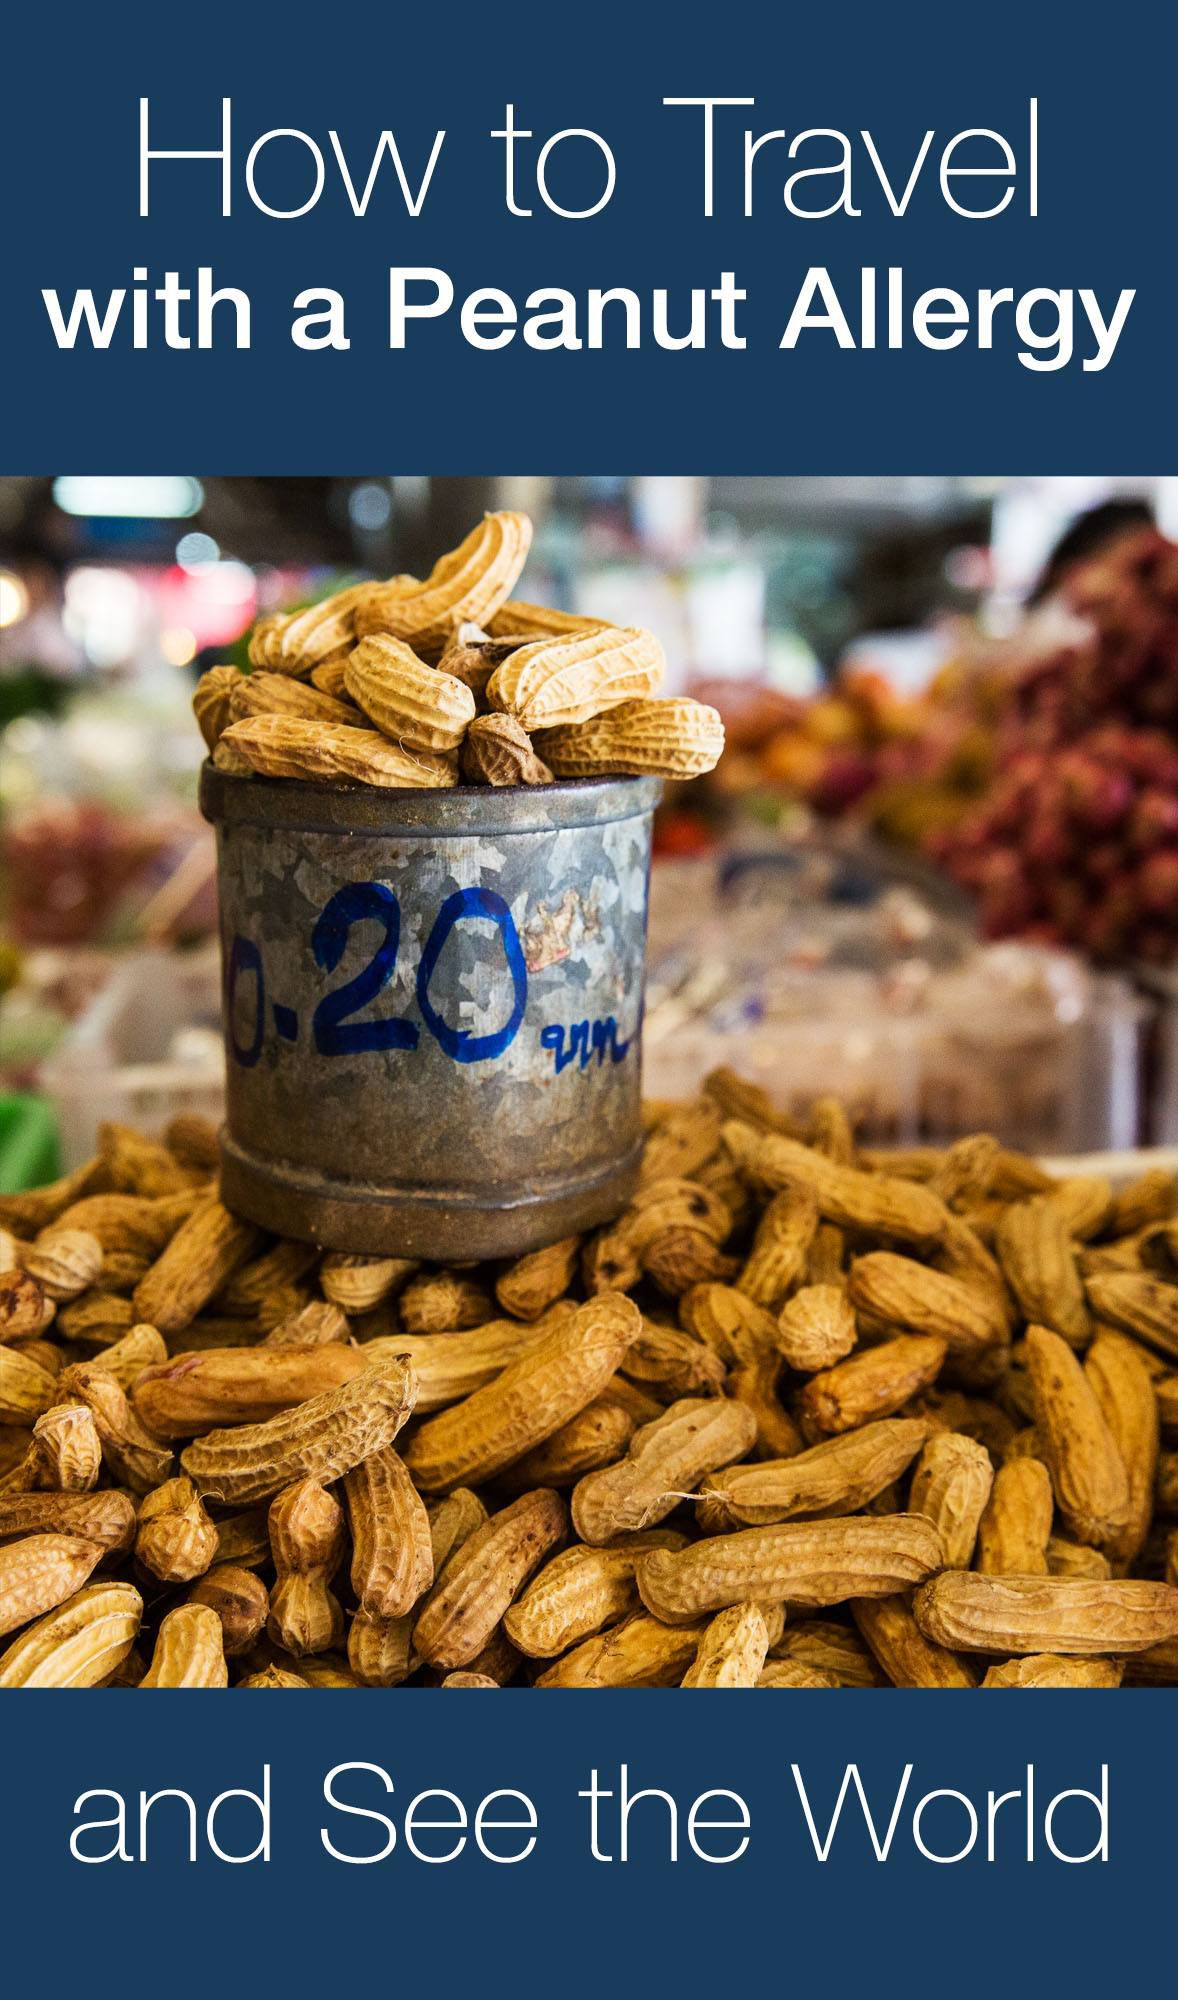 How to Travel with a Peanut Allergy and See the World